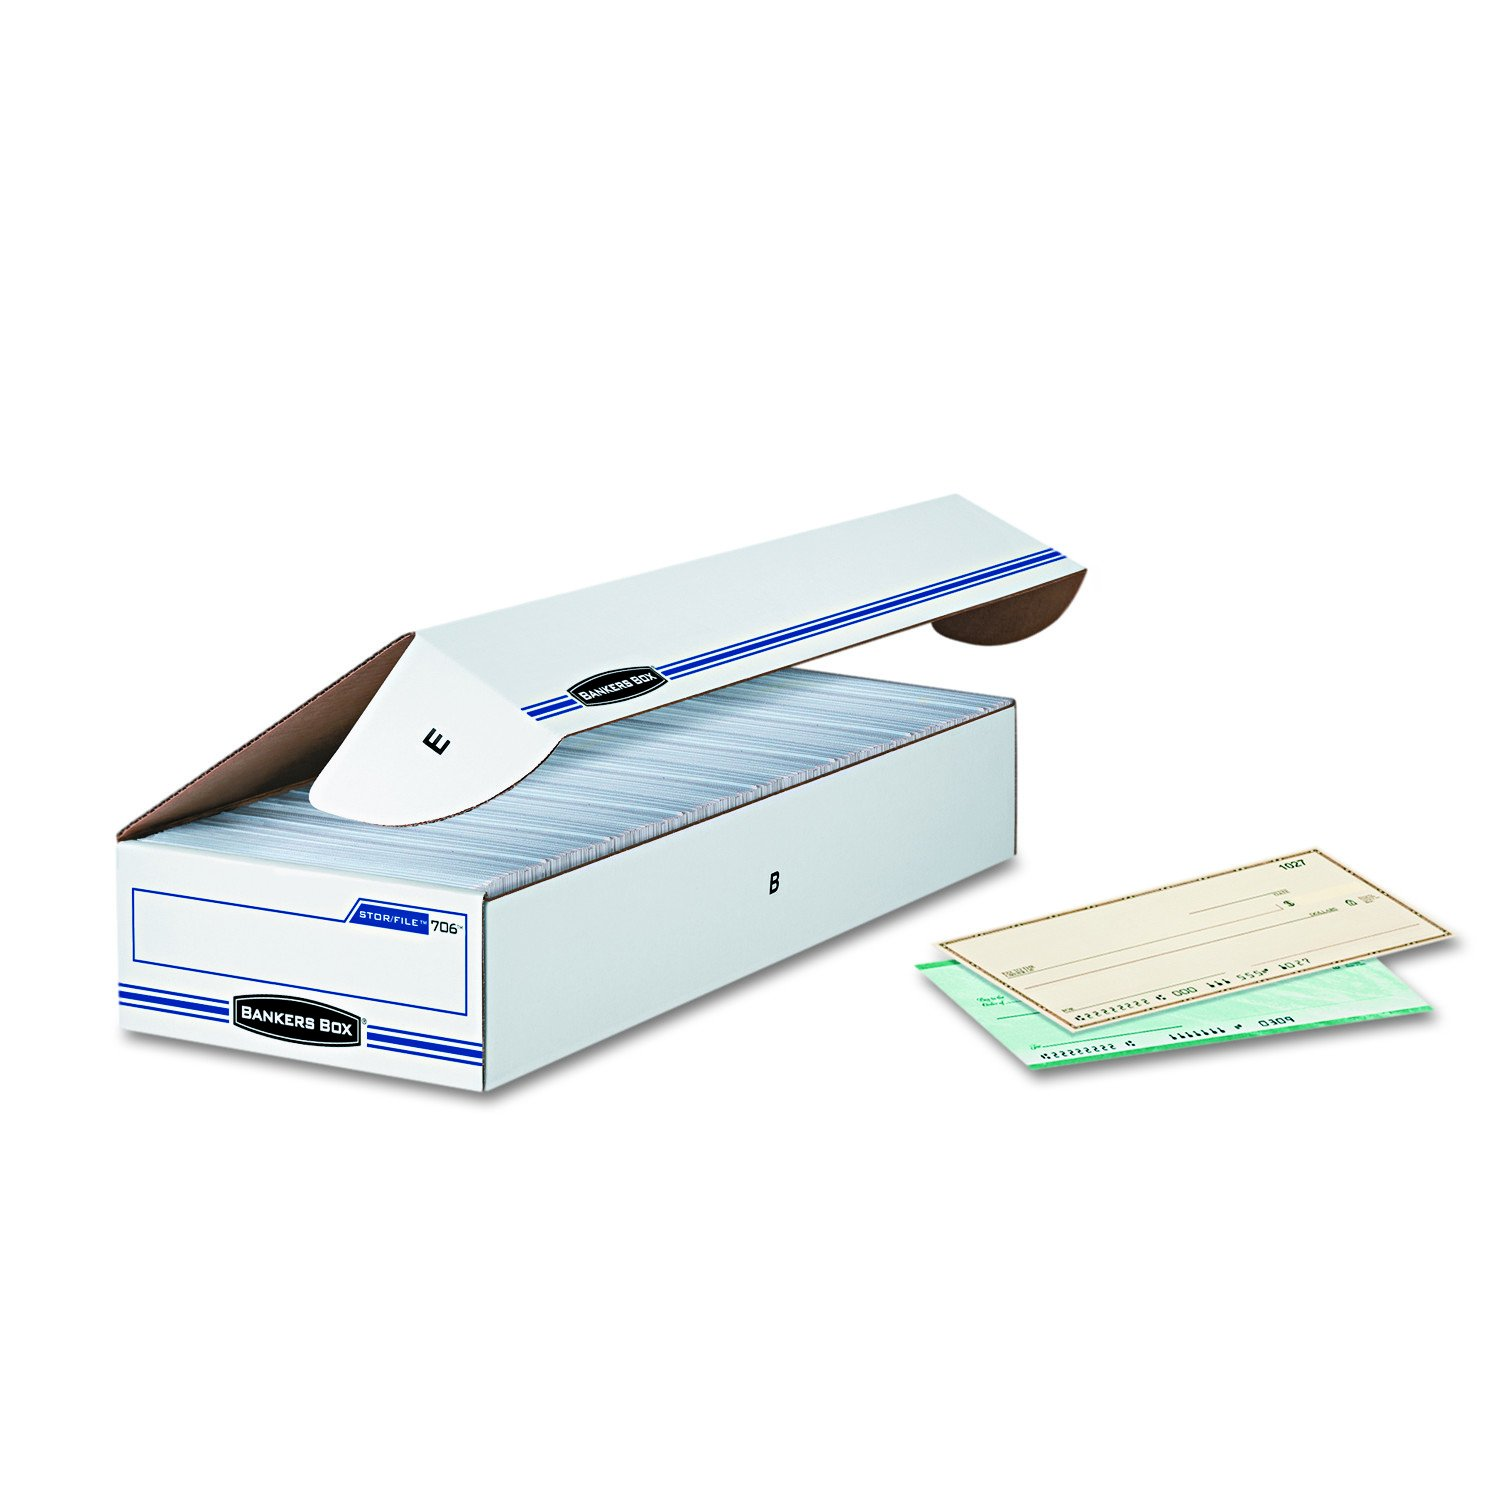 Bankers Box 00706 STOR/FILE Storage Box, Check, Flip-Top Lid, White/Blue (Case of 12)